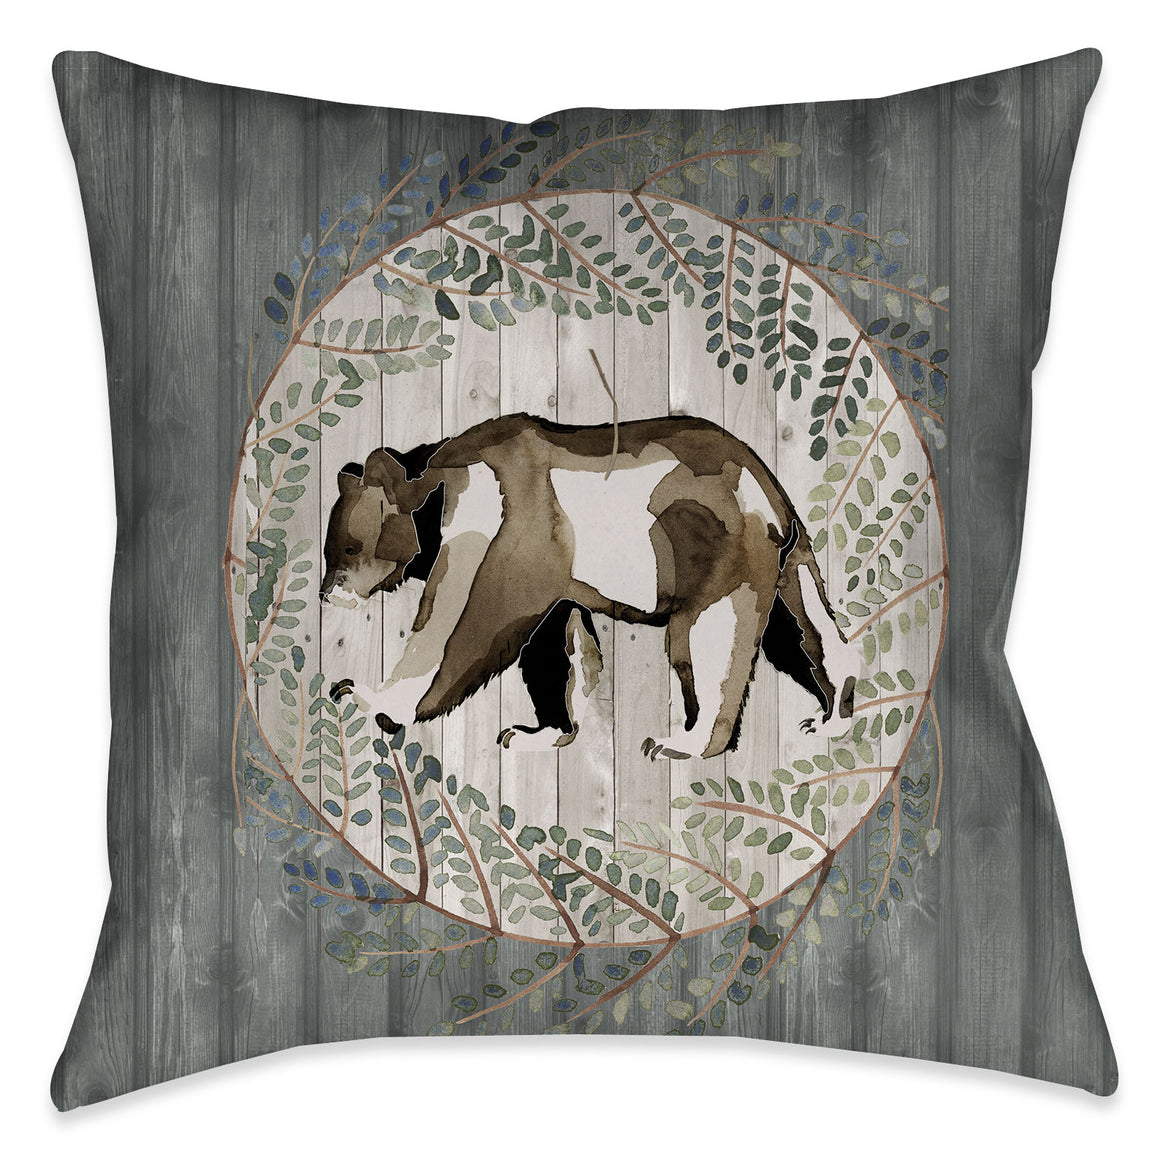 This sophisticated lodge look features a watercolor bear motif with modern design elements over a wooded texture giving it a graphic yet soft appearance. This nature-inspired pillow is sure to suit any one who has a sophisticated appreciation for nature.